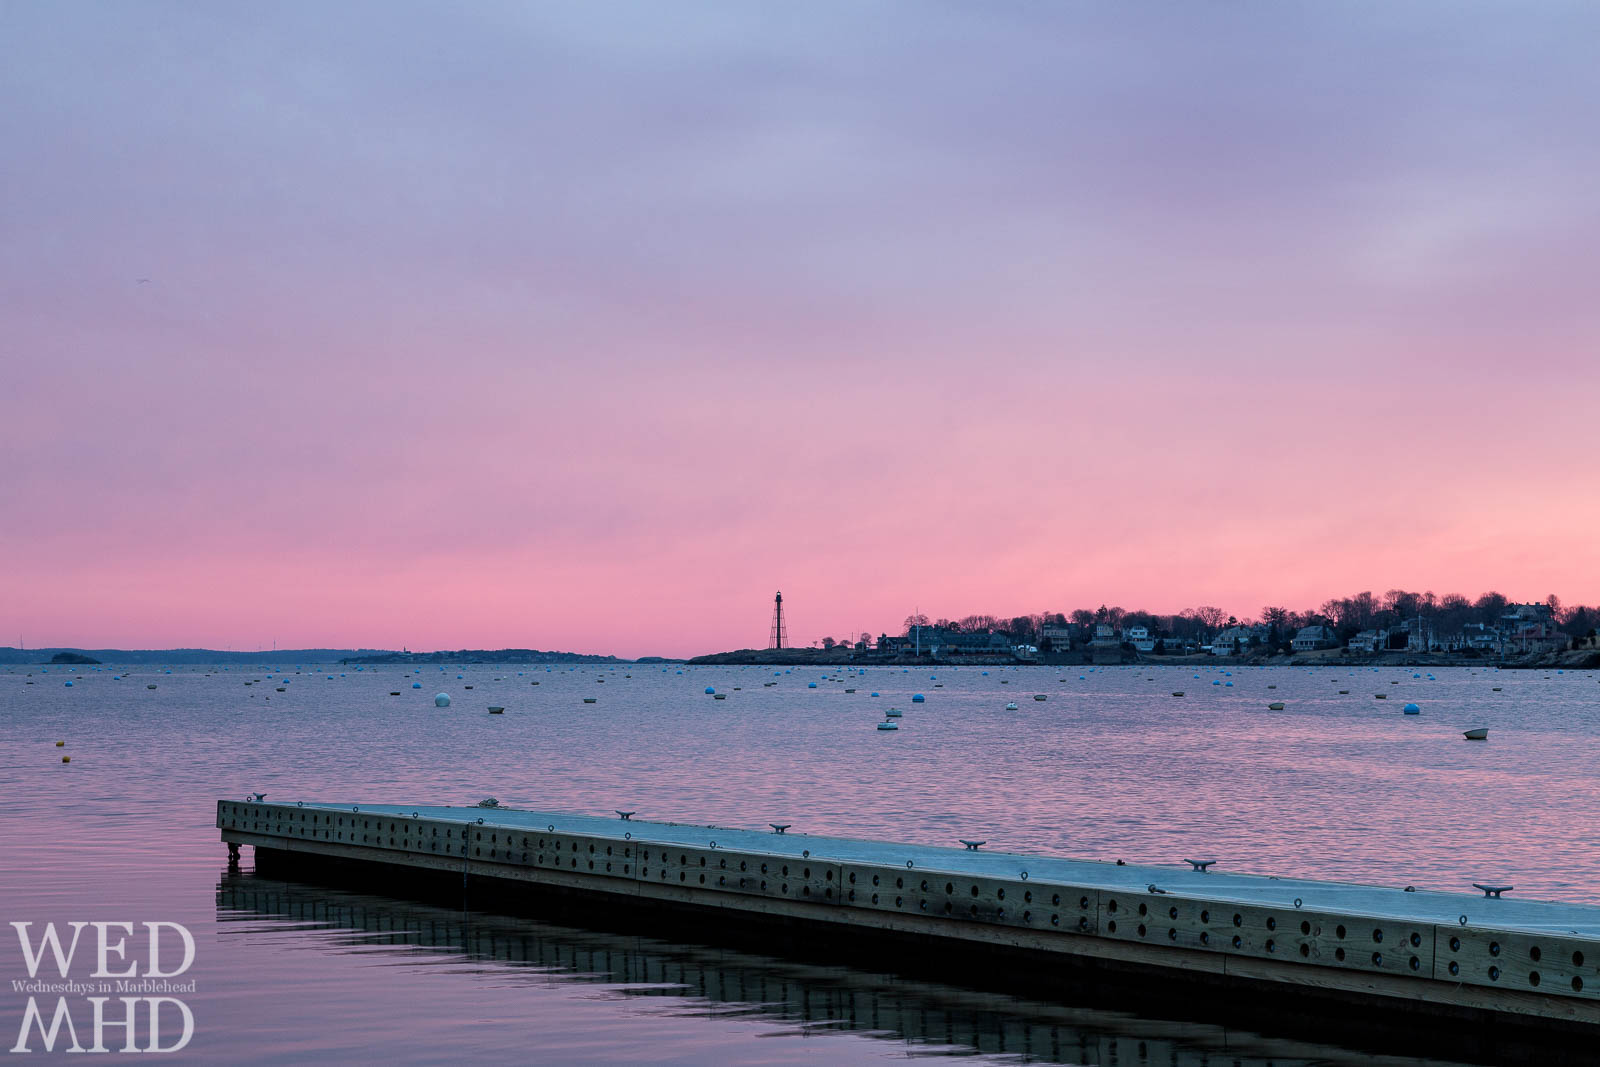 Leading into Marblehead Harbor